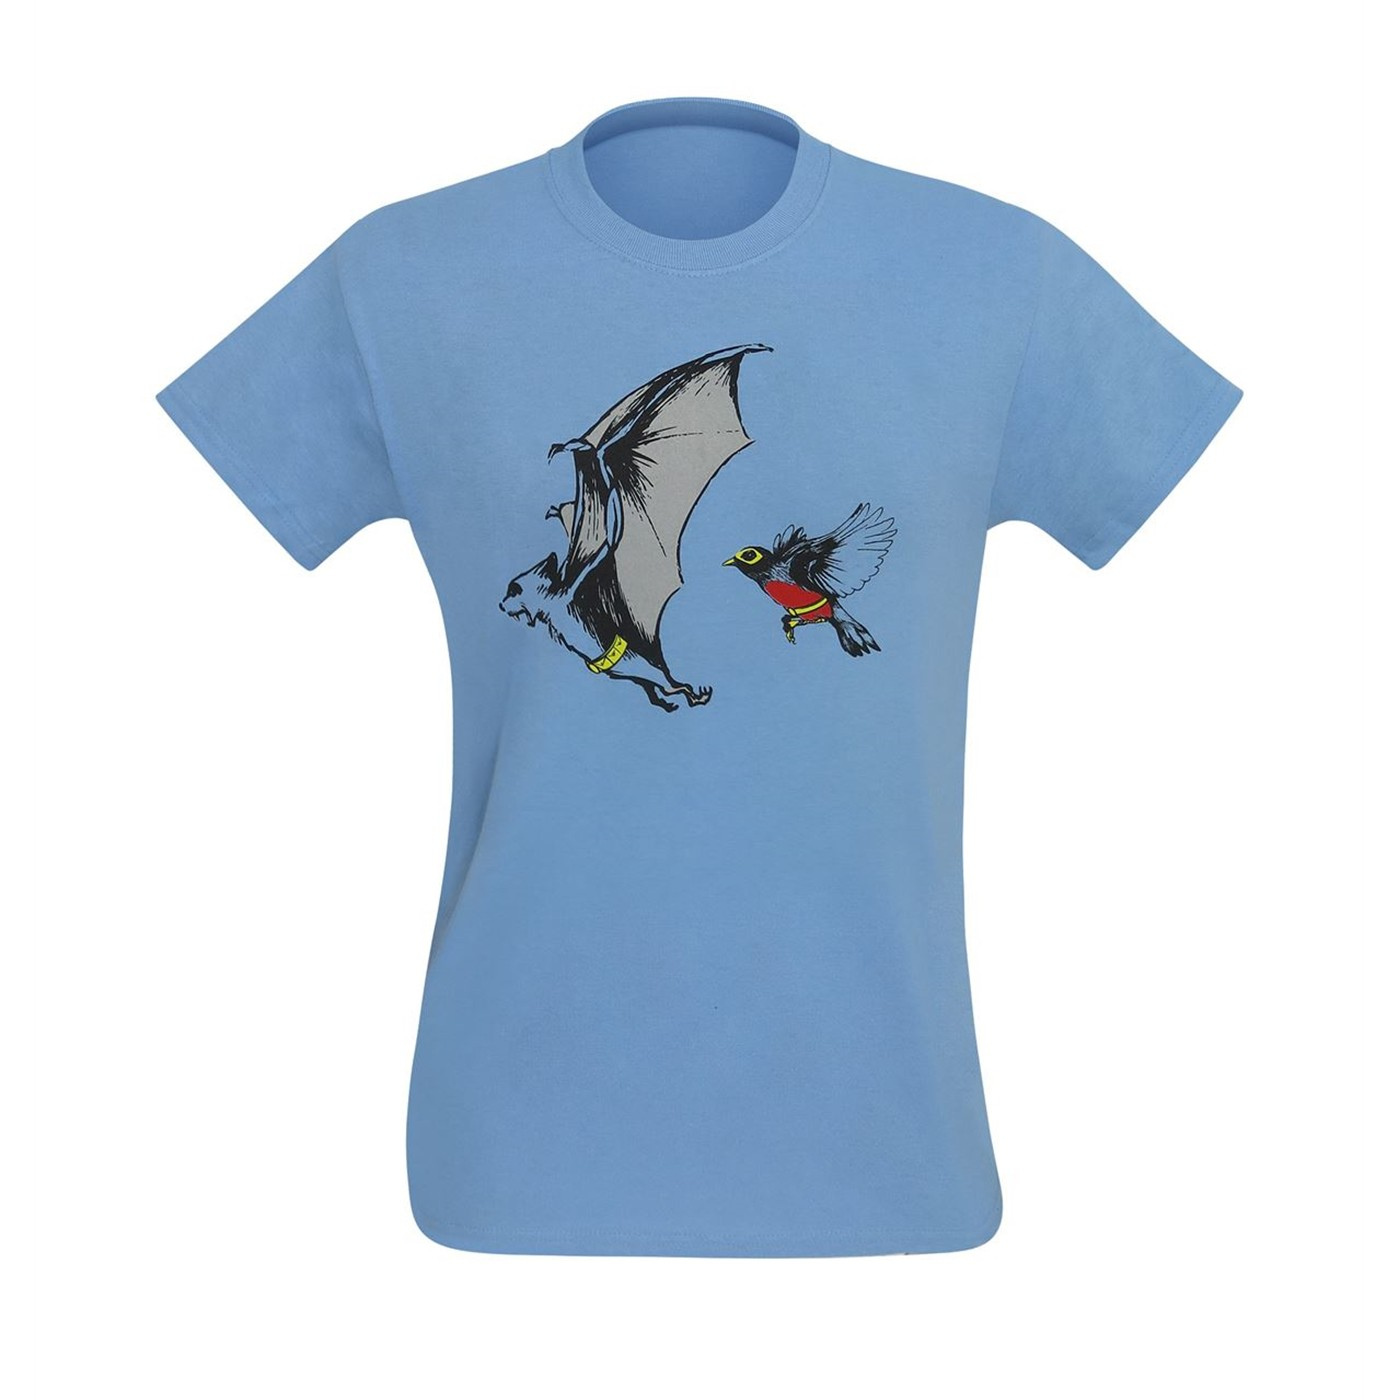 The Bat & The Robin Men's T-Shirt